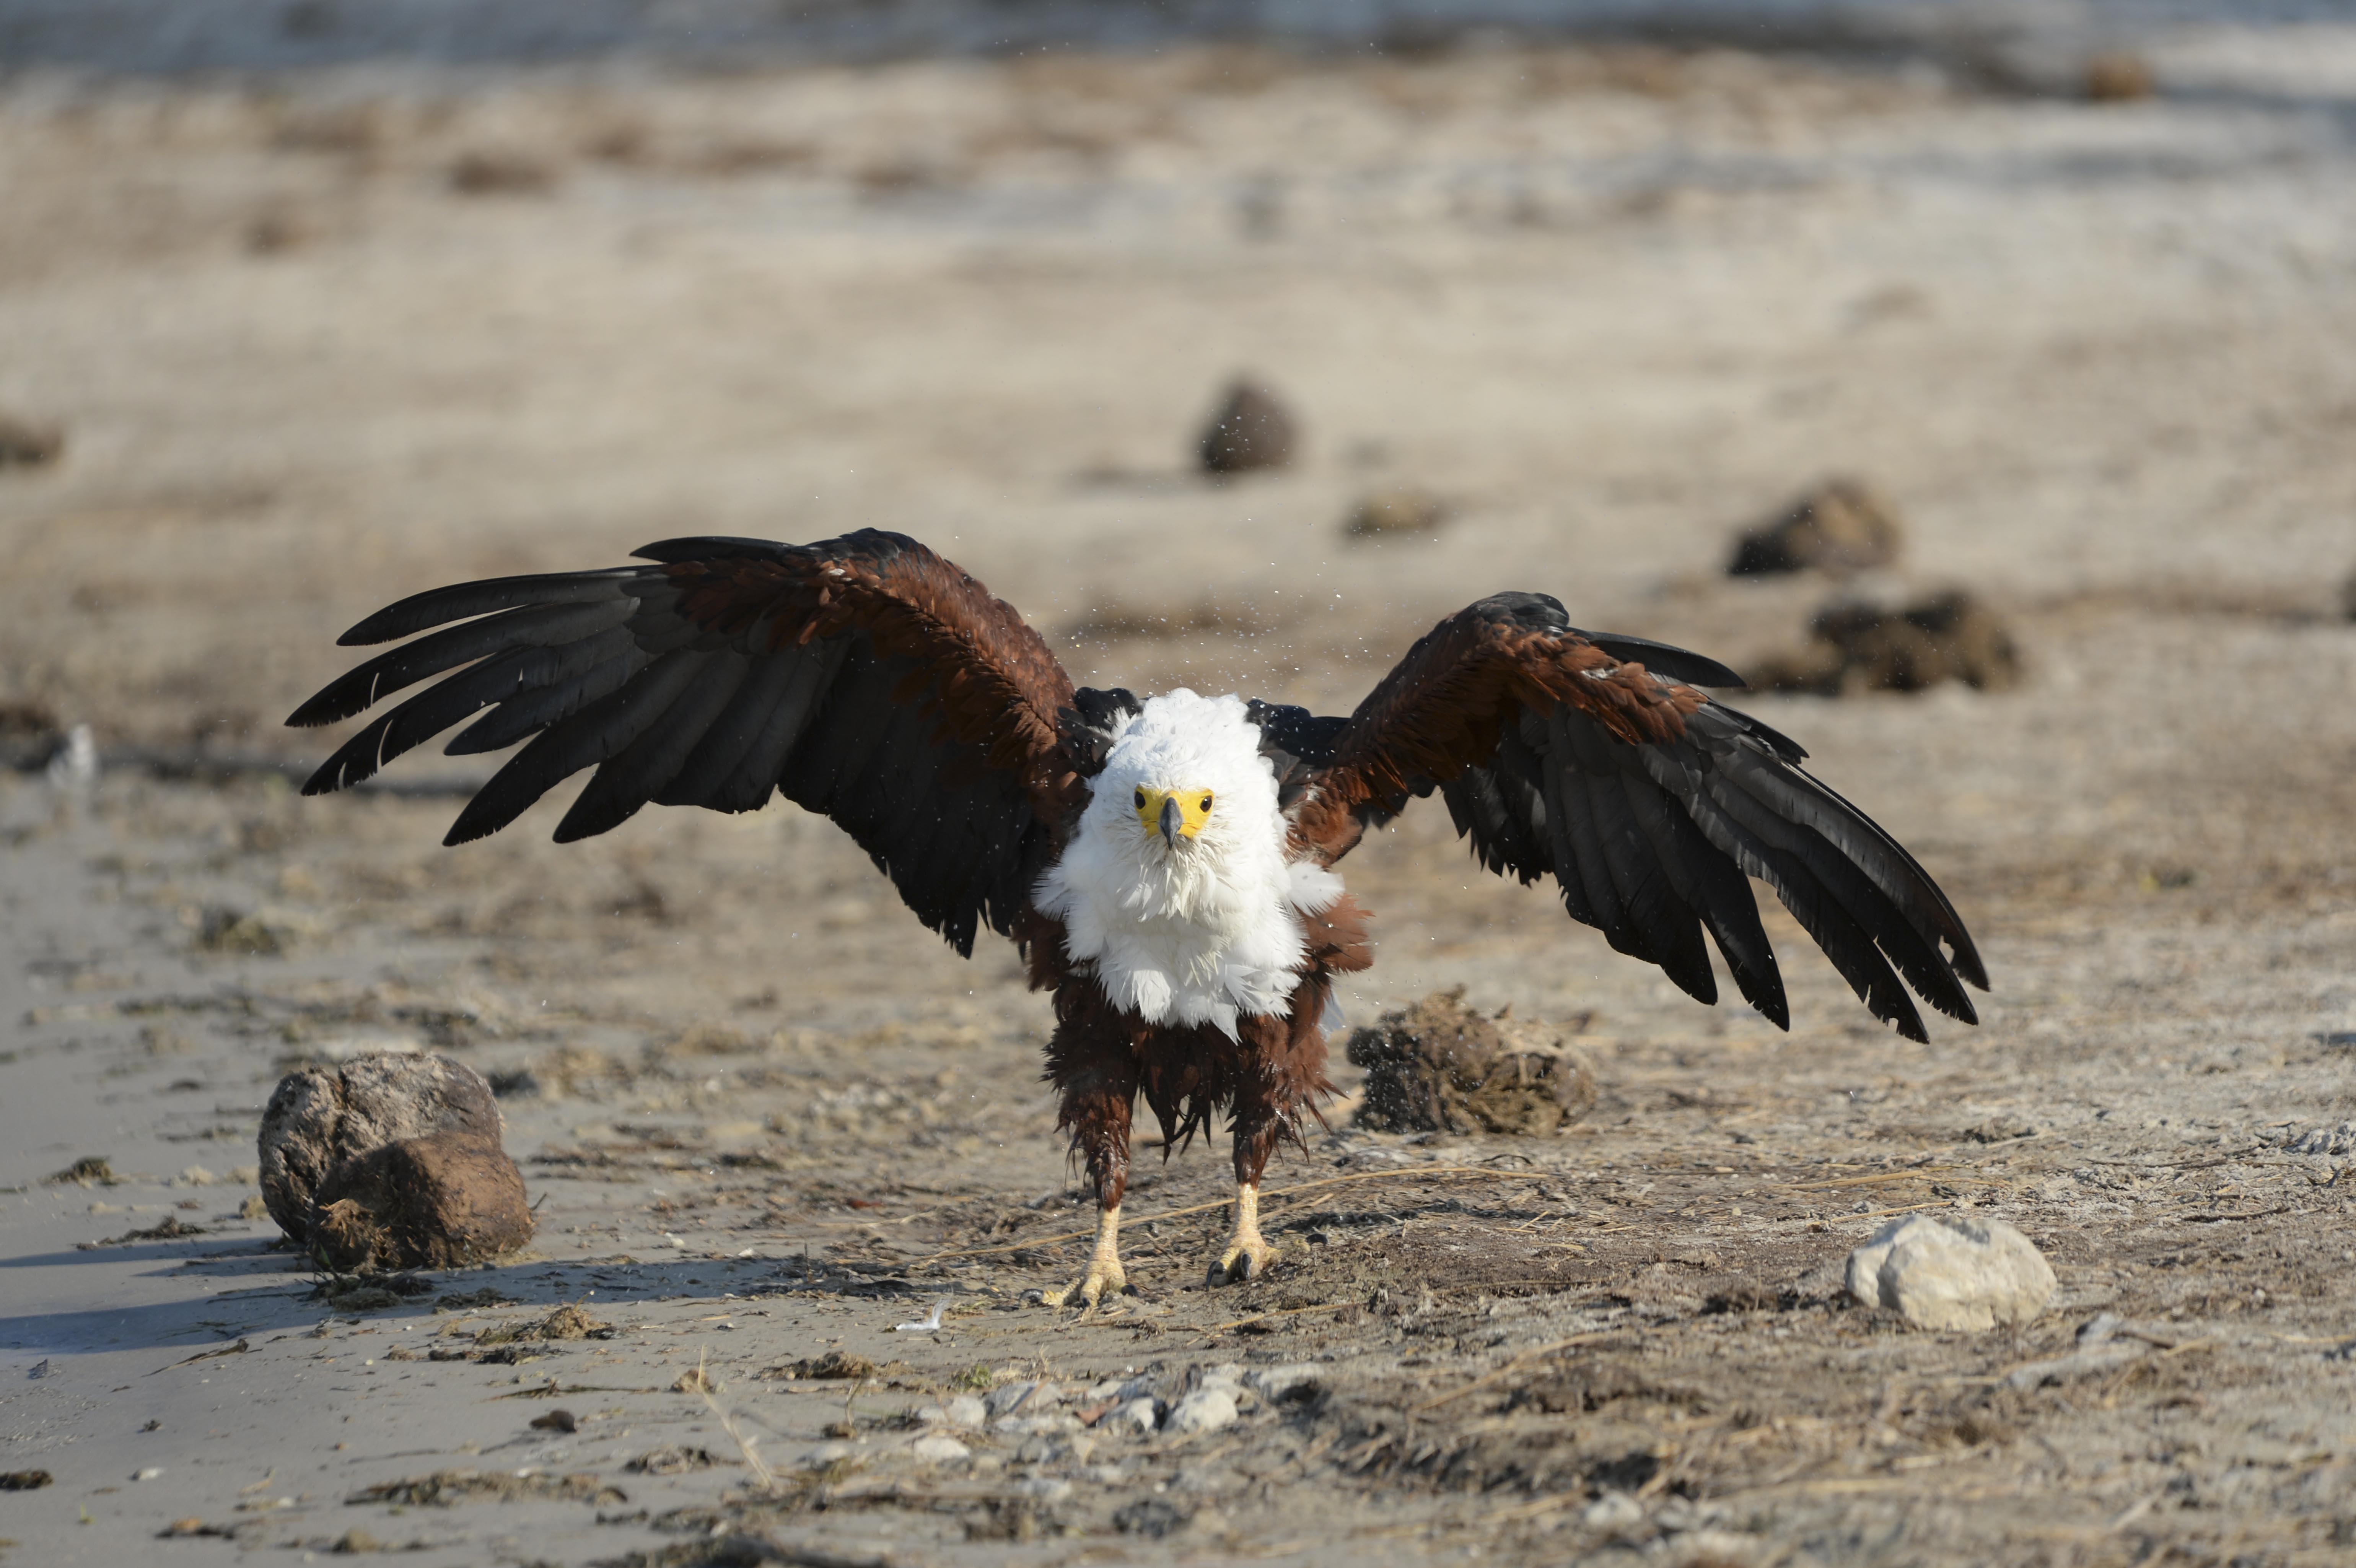 African Fish Eagle ©Joh. Ratermann